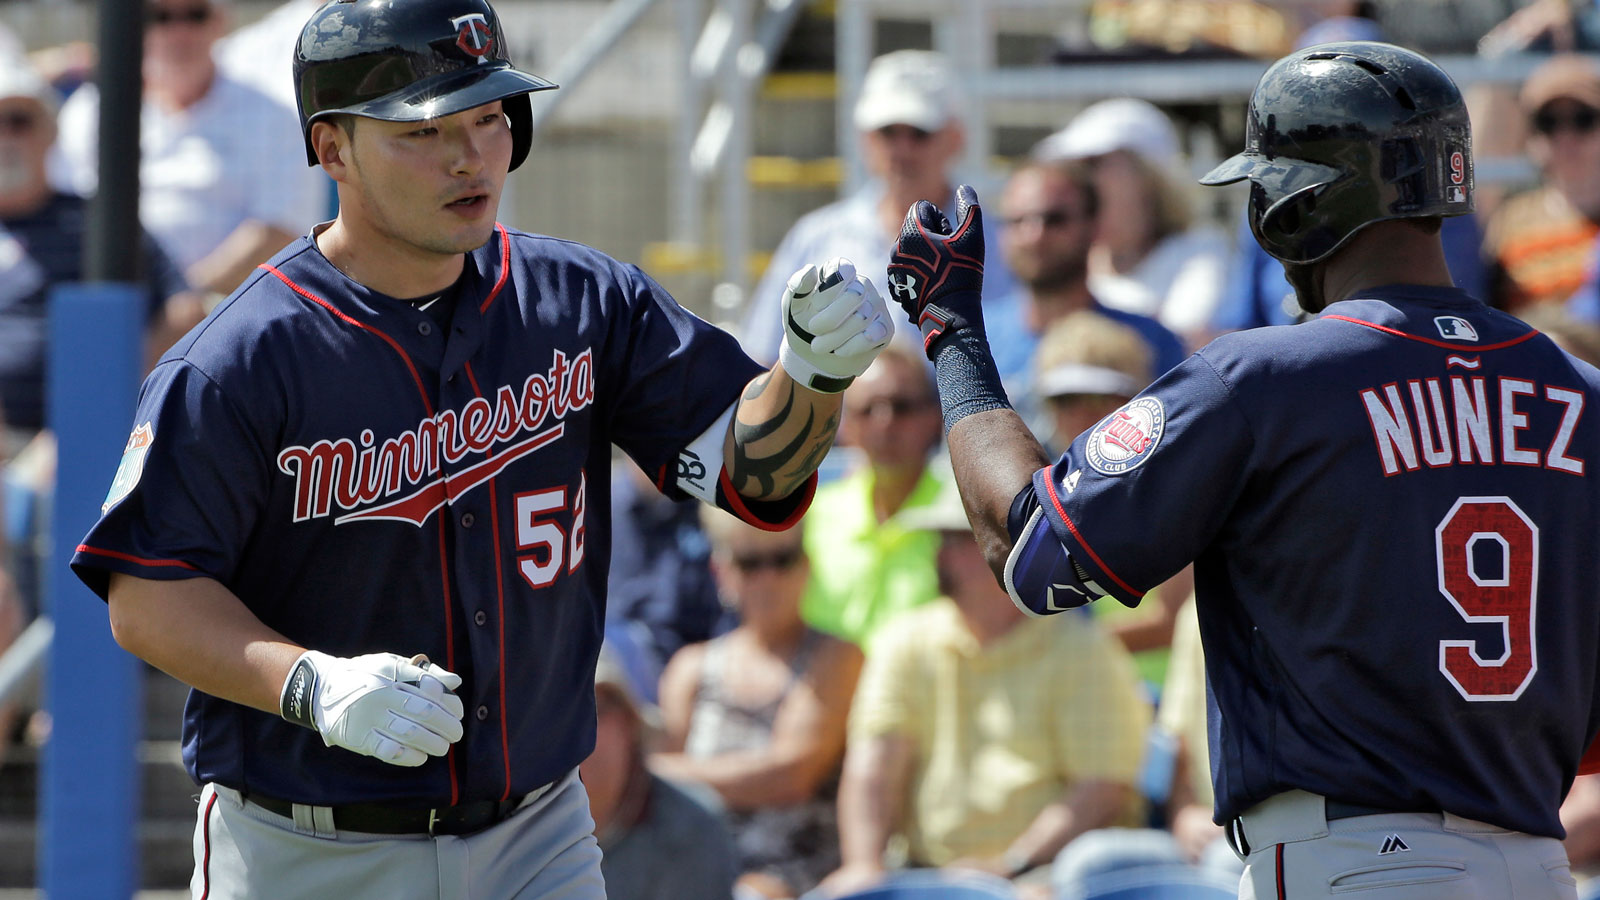 Park, Sano homer but Twins fall 9-3 to Blue Jays